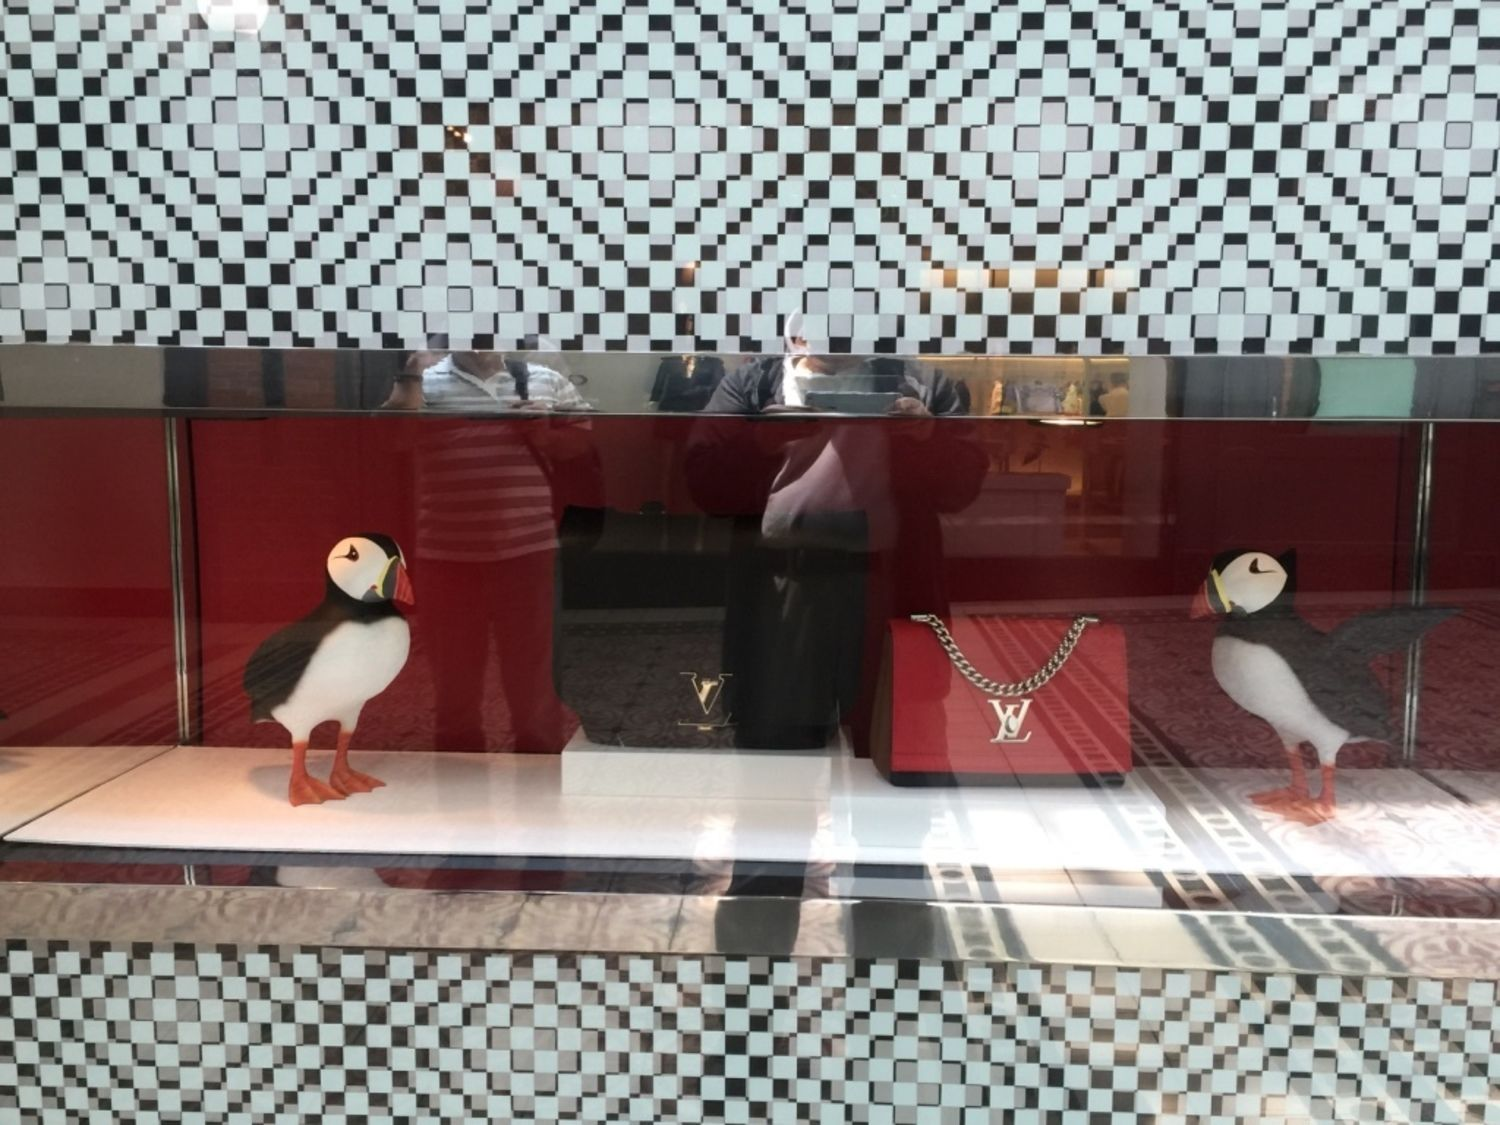 87dd05d9a80 Show Window of LOUIS VUITTON with Bags and Penguins at V   A Waterfront Mall